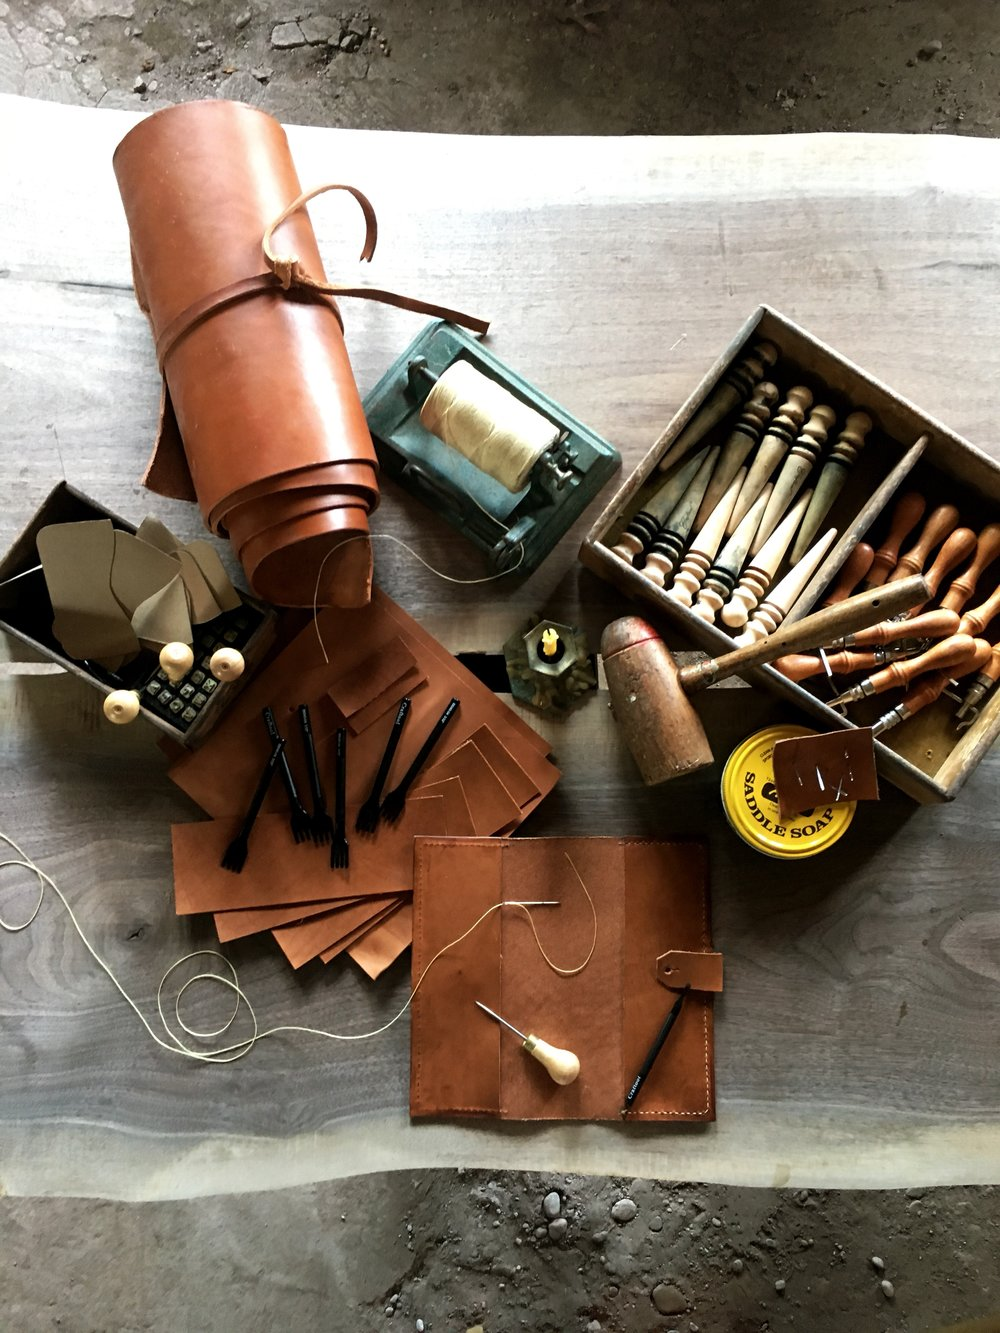 Fish & Bicycle Hand Leather Smithing - photo Juliette Hermant - 1